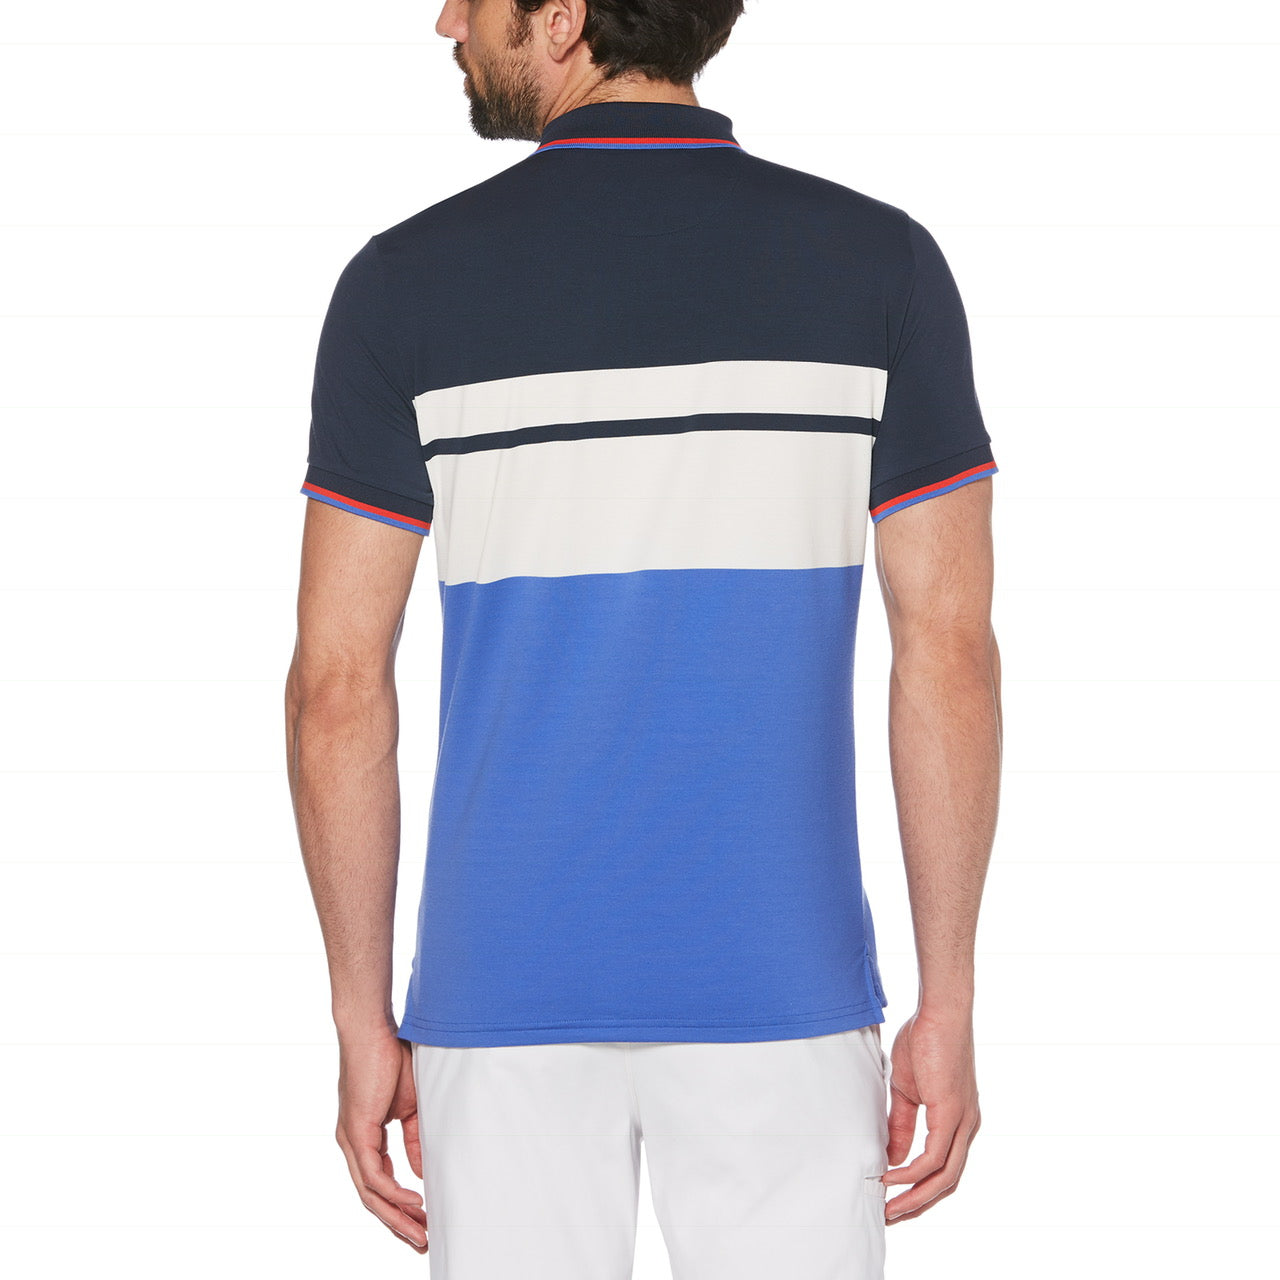 Penguin Golf The Captain Engineered Striped Polo